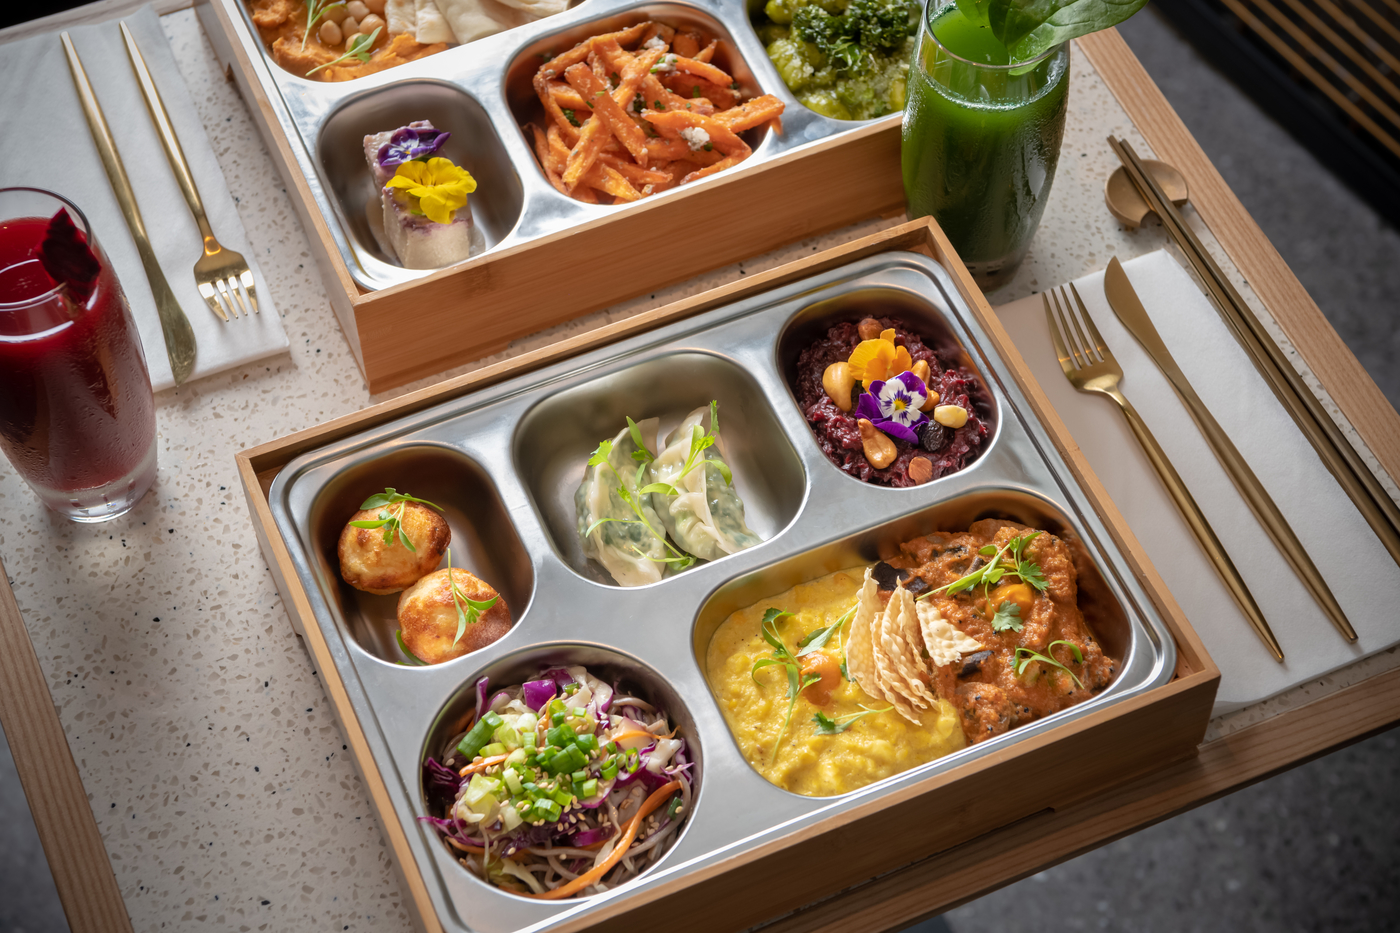 Serving breakfast, lunch and dinner, Veda is one of our fave plant-based joints in Central